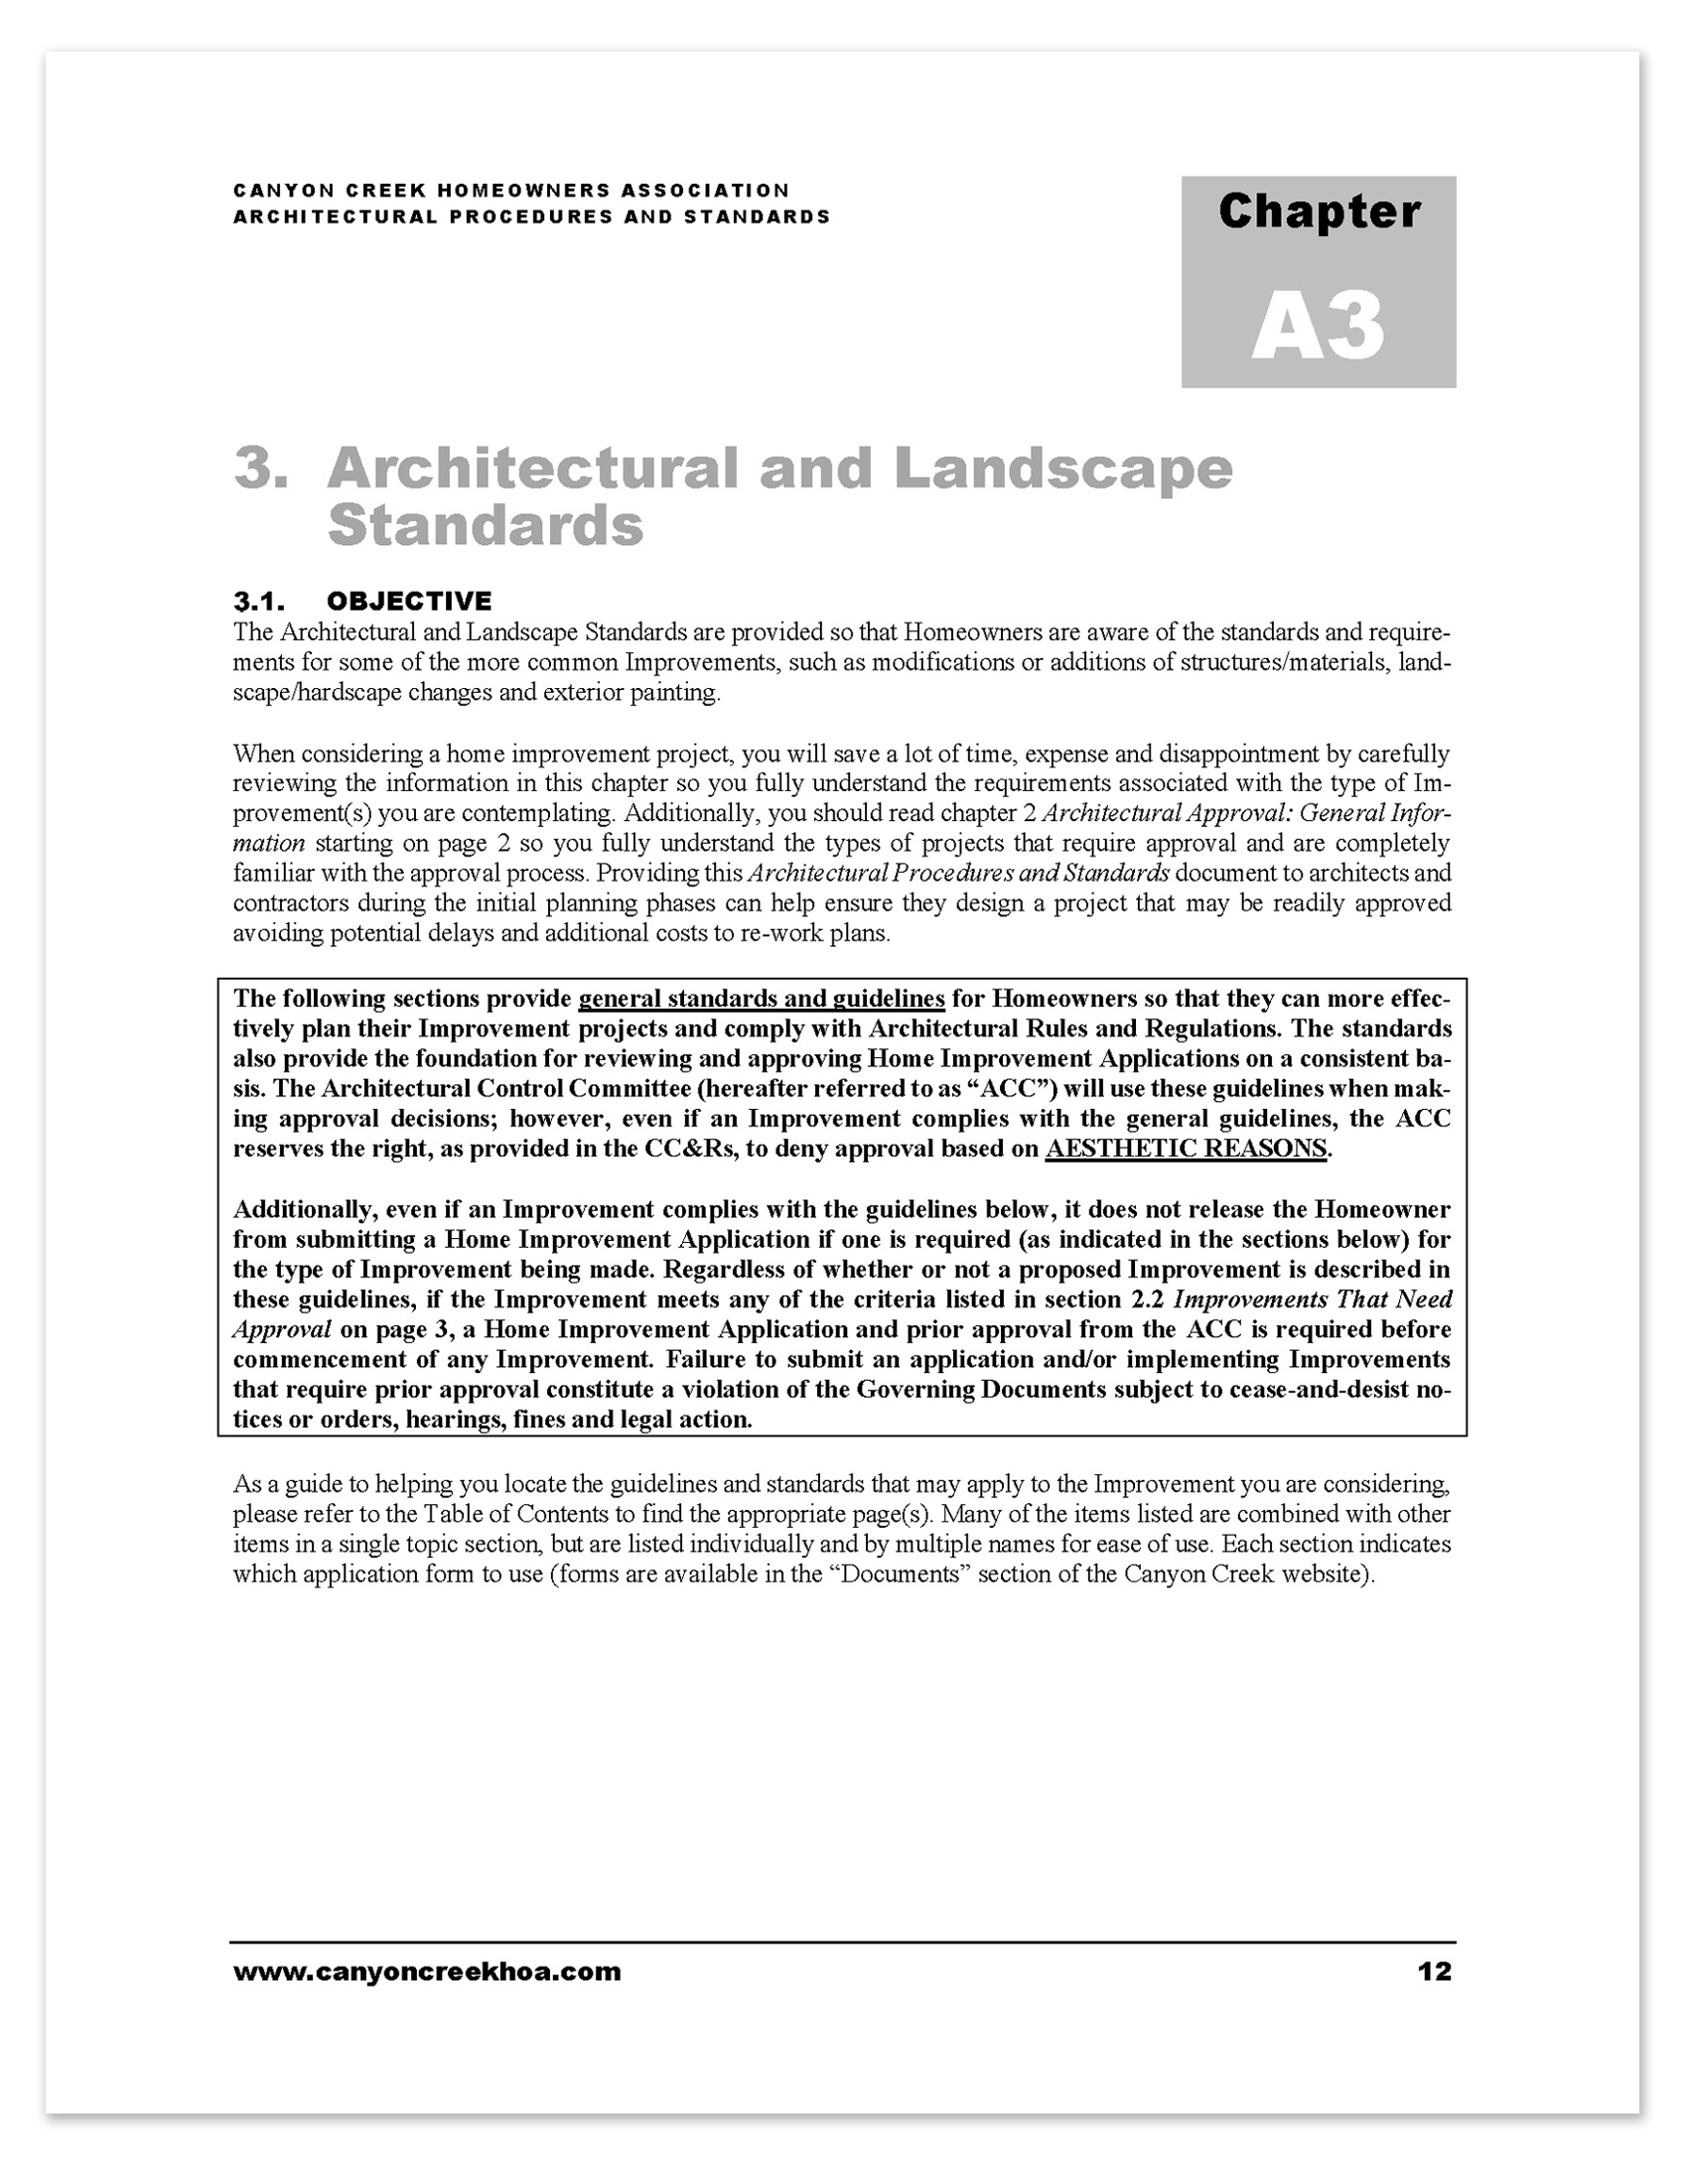 CC Architectural Procedures and Standards (final effective 13FEB18)_Page_16.png